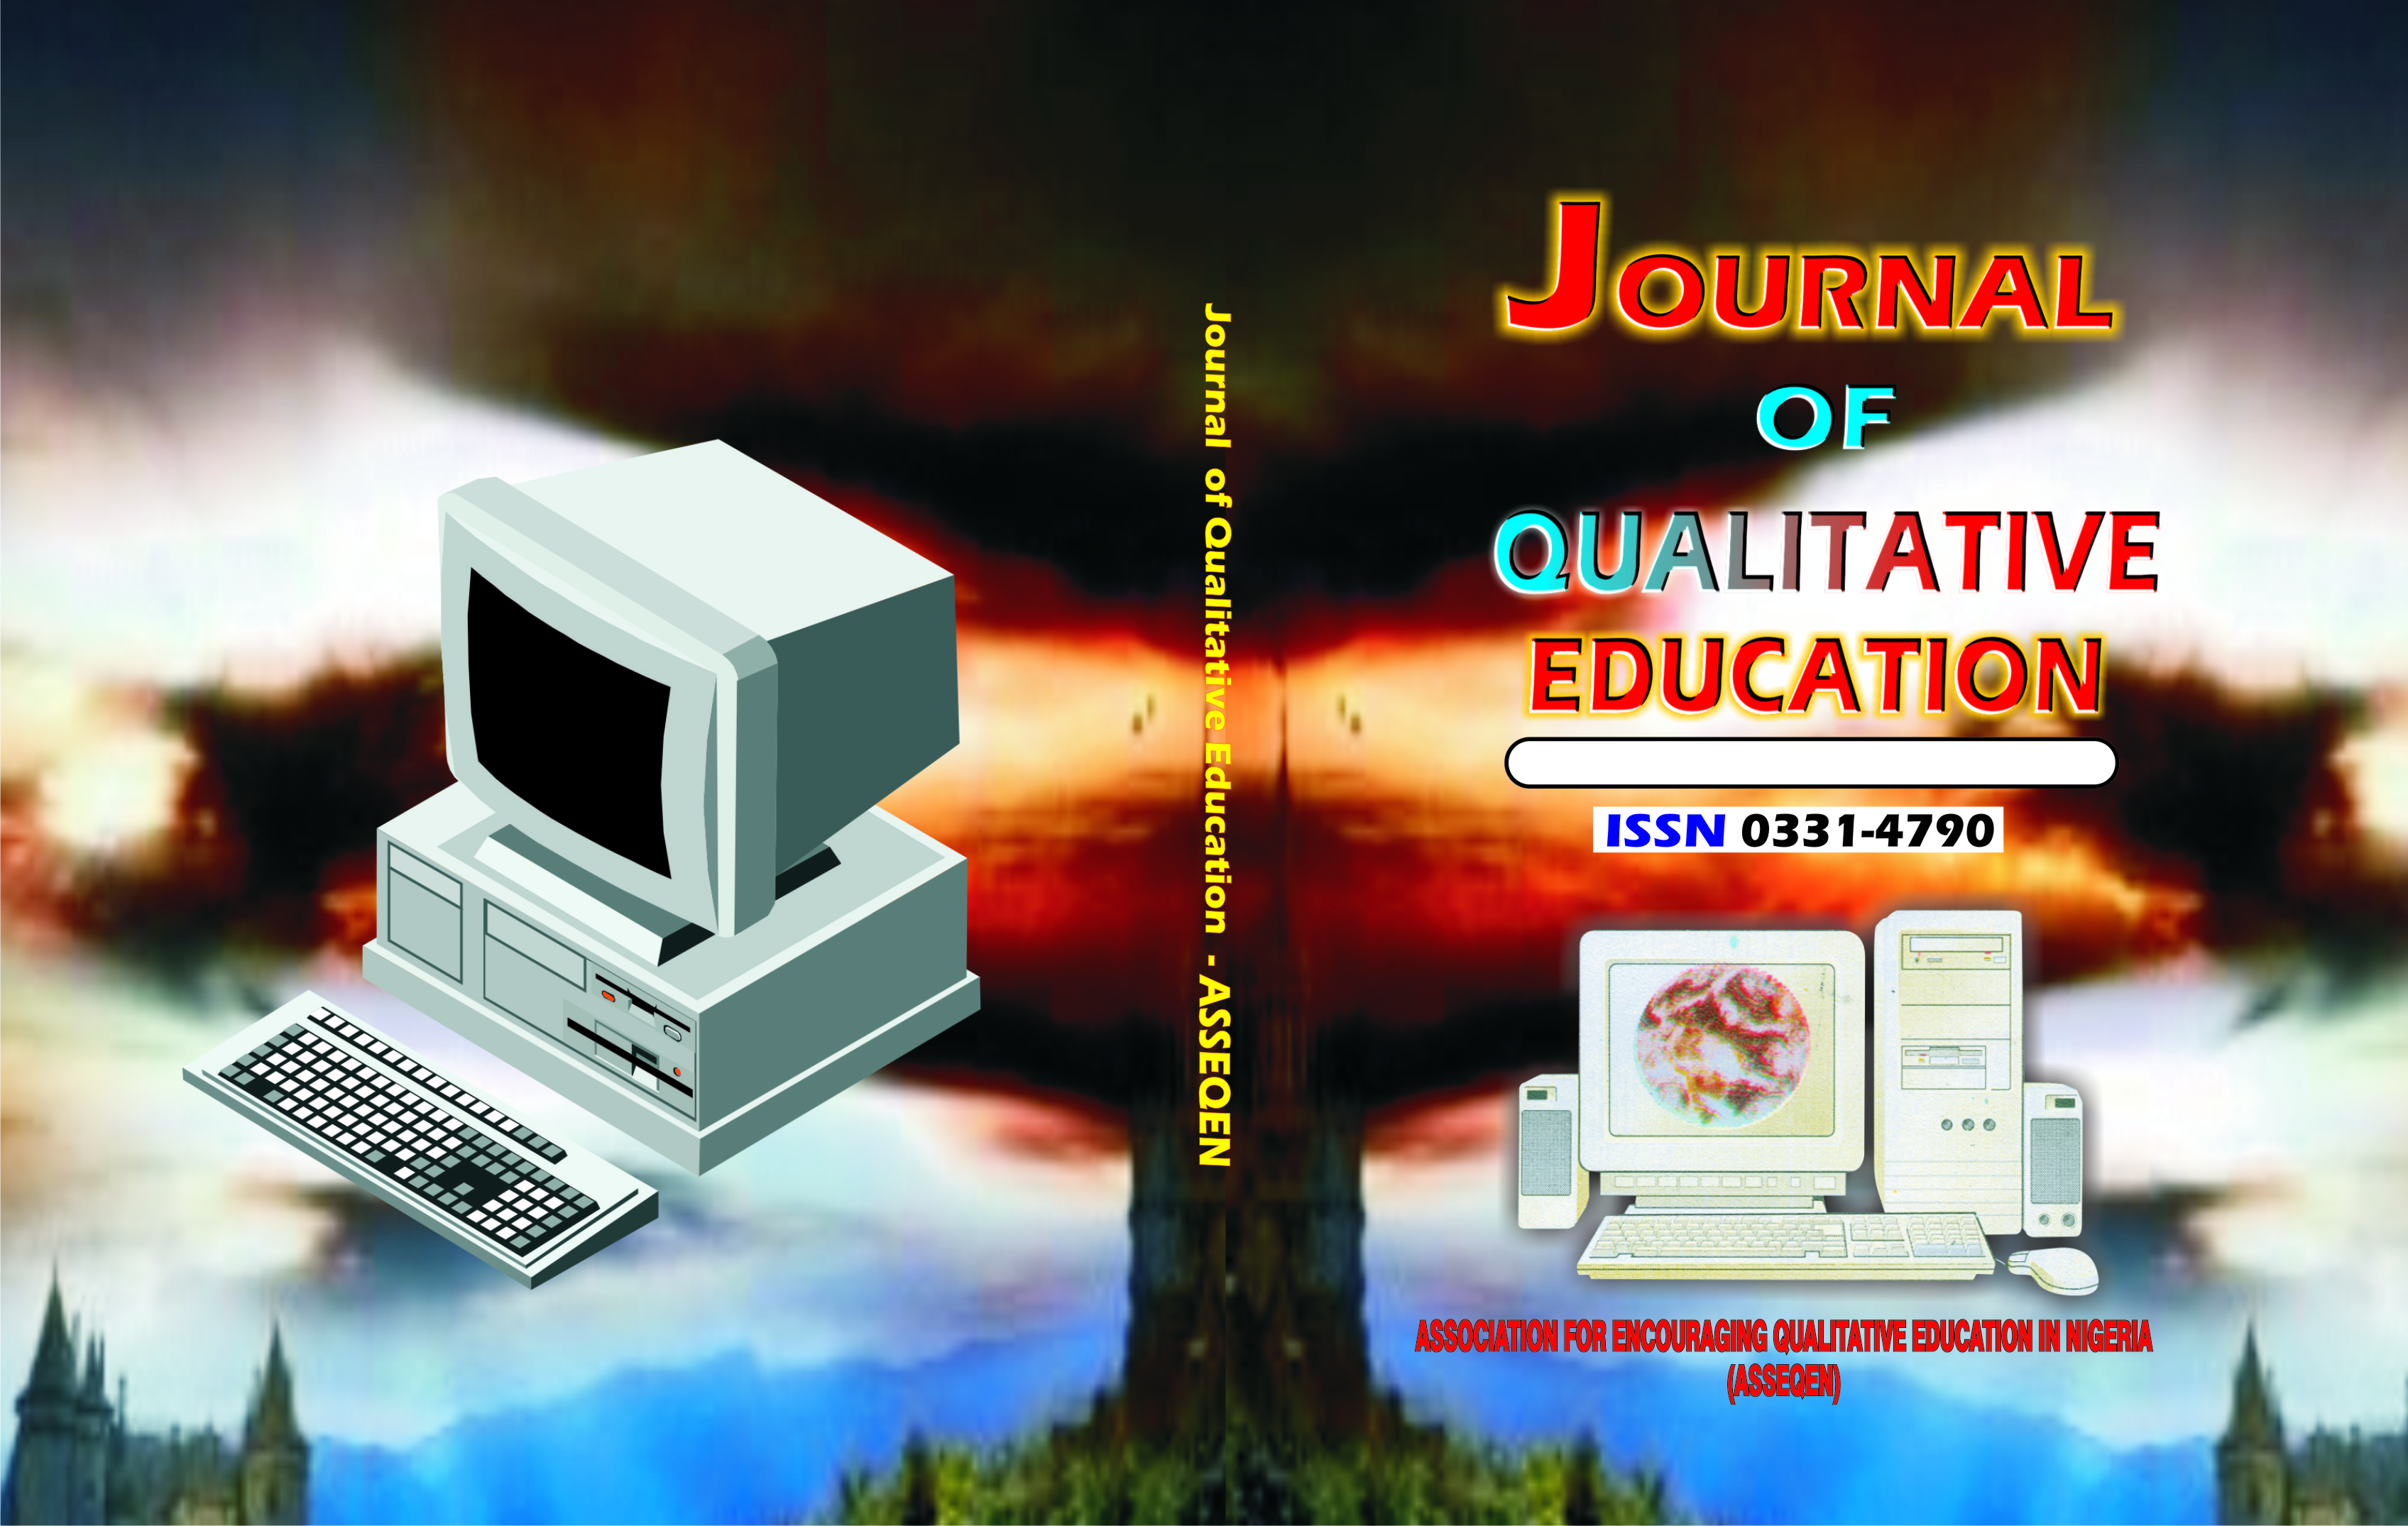 About Journal of Qualitative Education